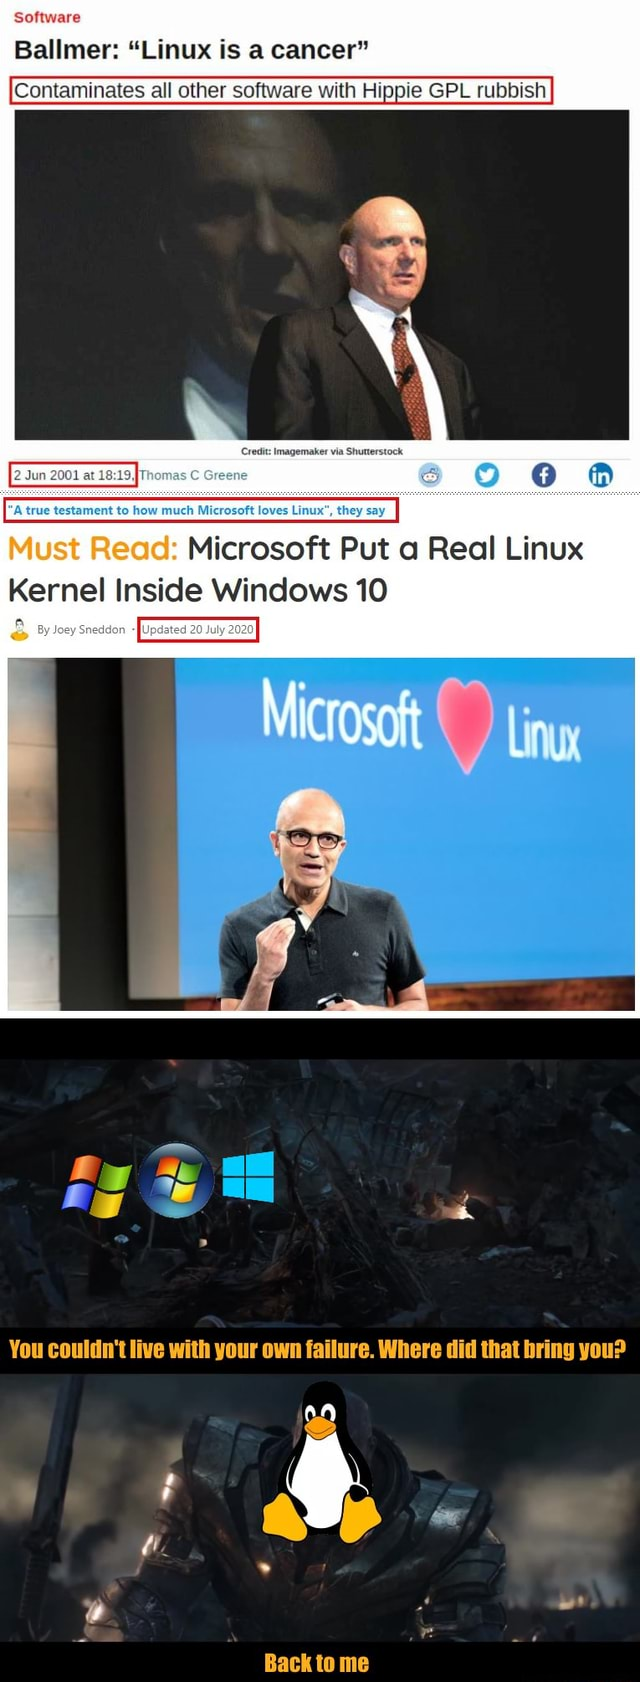 Software Ballmer Linux is a cancer Contaminates all other software with Hippie GPL rubbish 2 Jun 2001 at Credit Imagemaker via Shutterst true testament to how much Microsoft loves Linux , they say Must Read Microsoft Put a Real Linux Kernel Inside Windows 10 20 You couldn't live with your own failure. Where did that bring you Bank tn ma meme